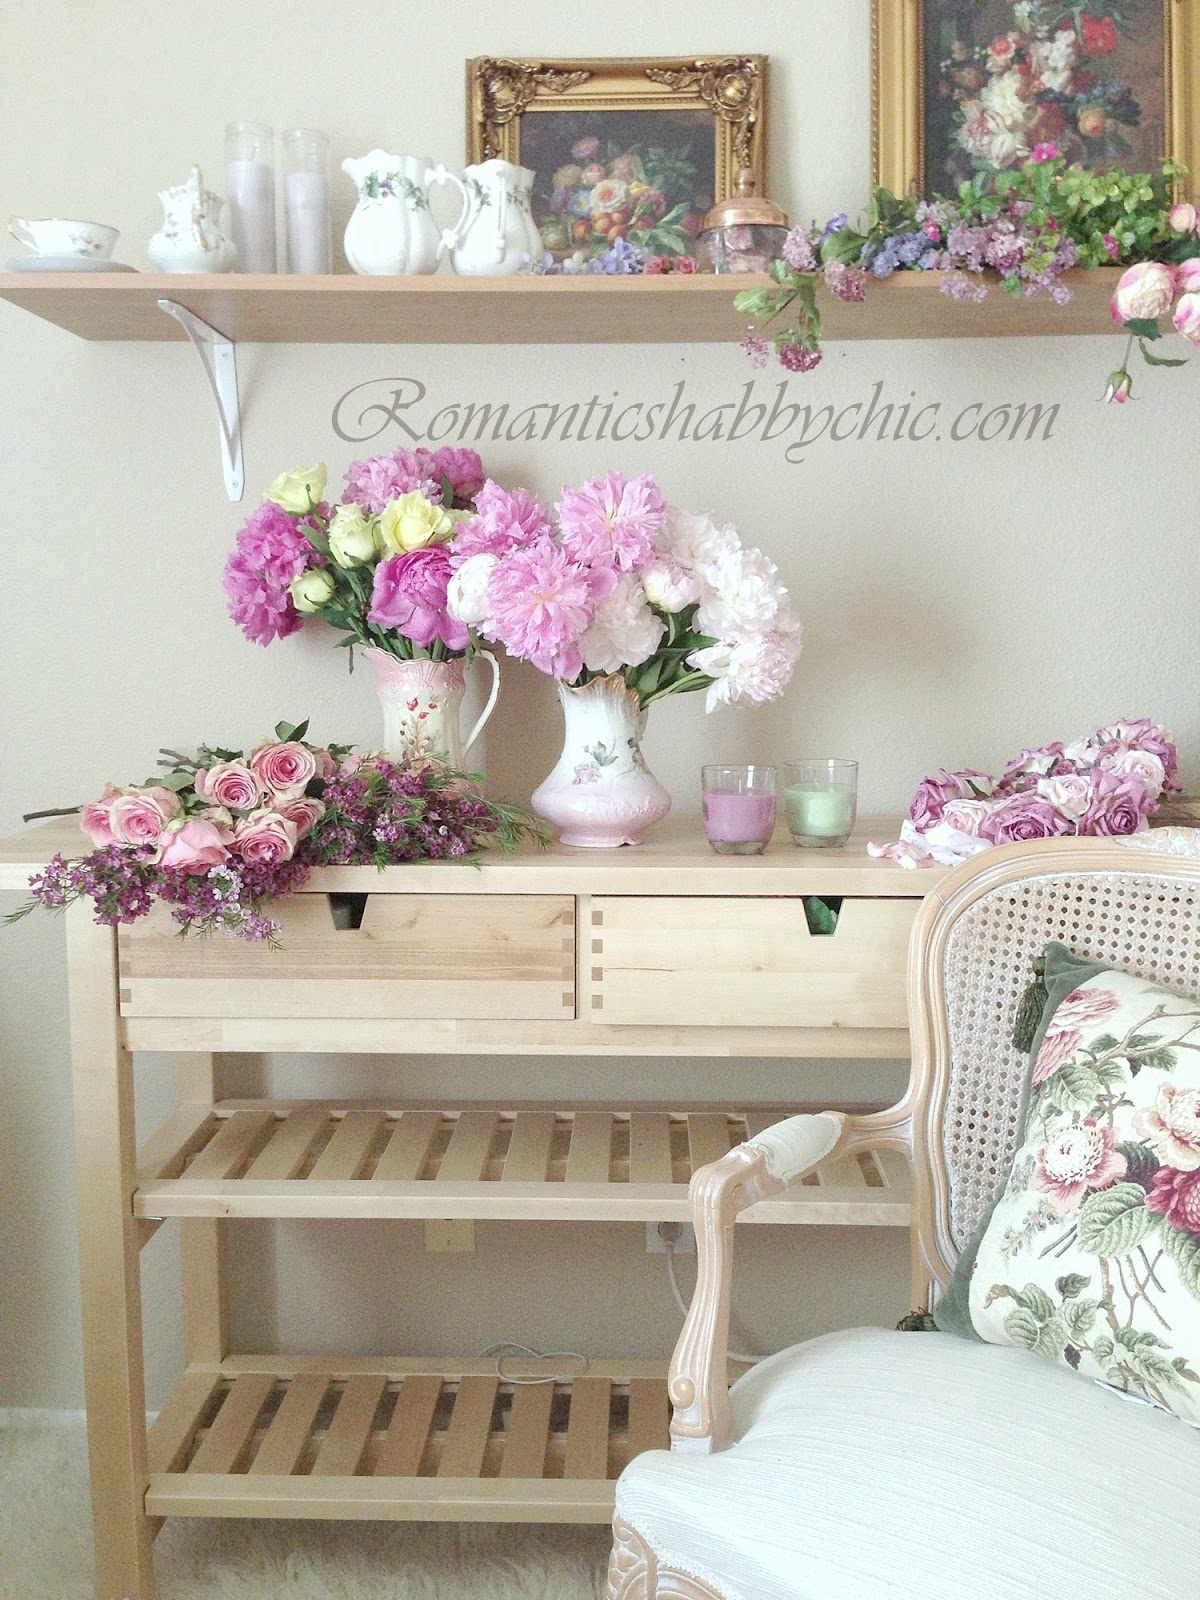 shabby chic blogs shabby chic decorating blog. Black Bedroom Furniture Sets. Home Design Ideas